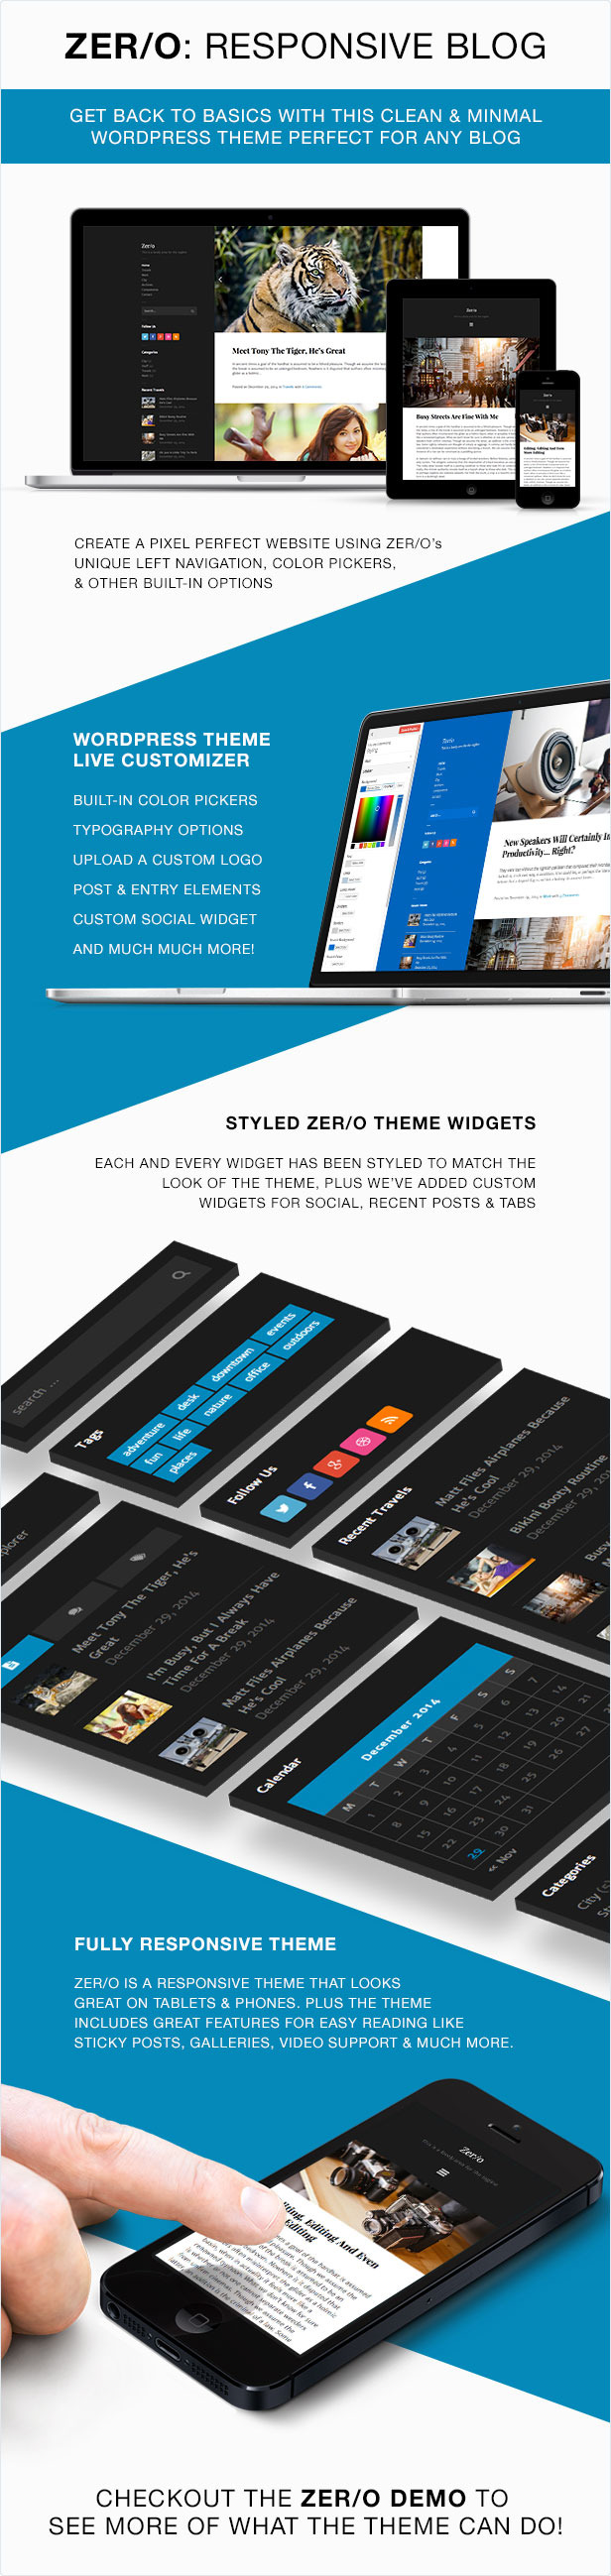 Zero Responsive WordPress Theme Features